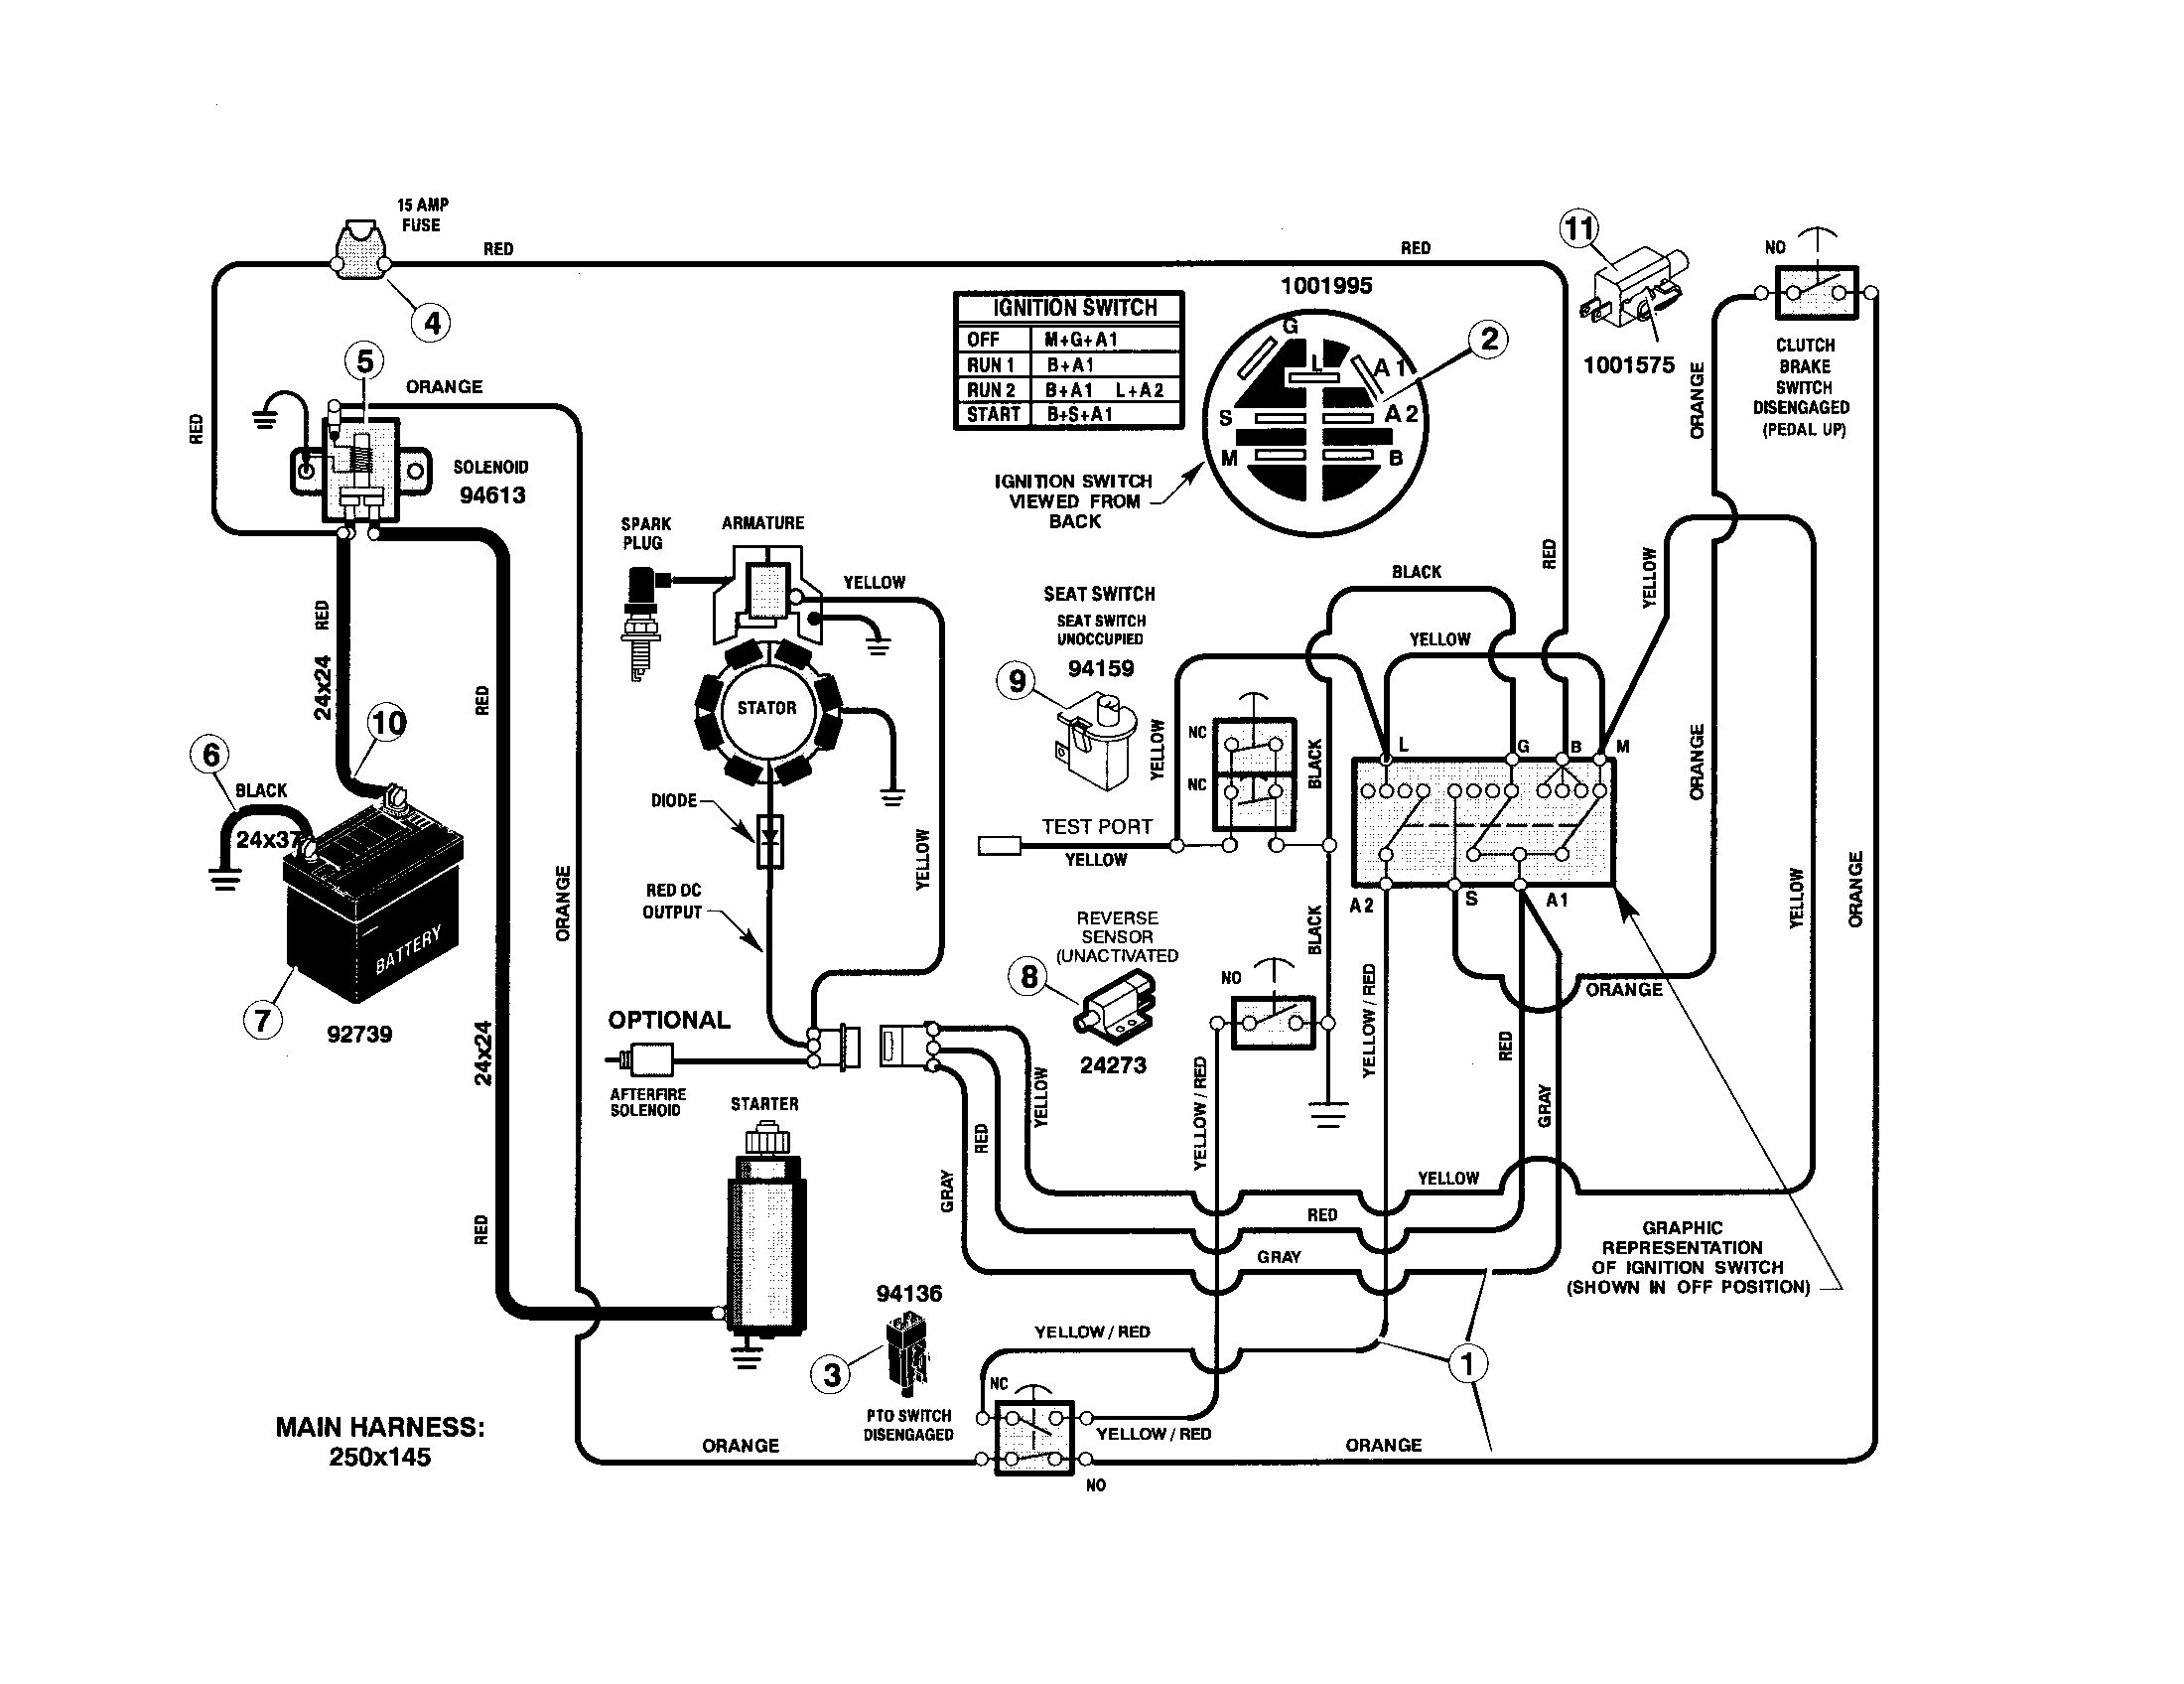 Briggs Stratton Engine Electrical Diagram - Get Rid Of ... on